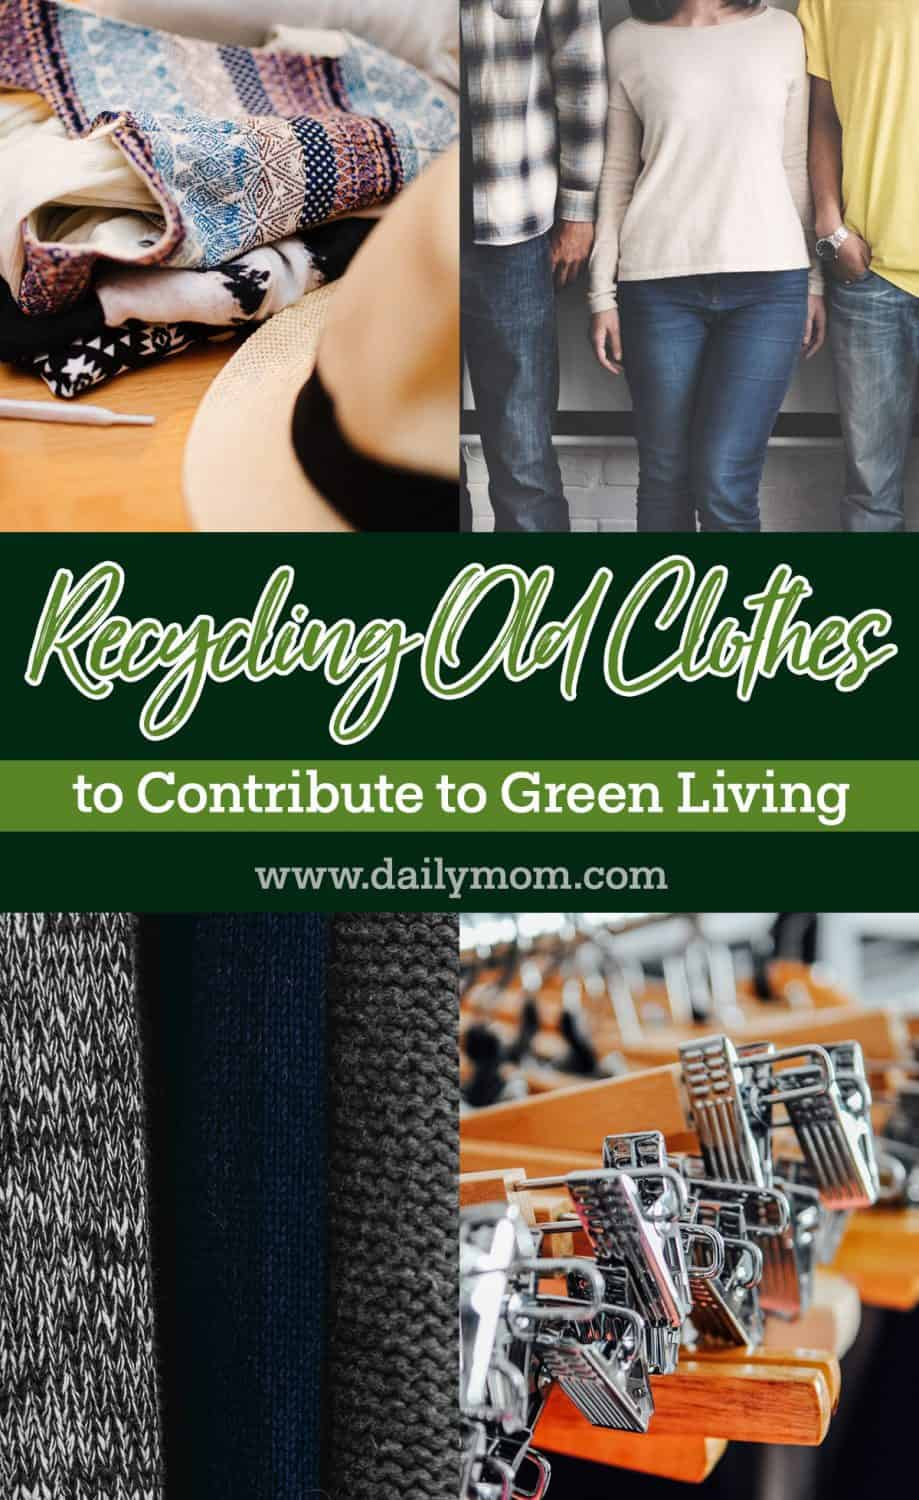 Recycling Old Clothes to Contribute to Green Living 6 Daily Mom Parents Portal